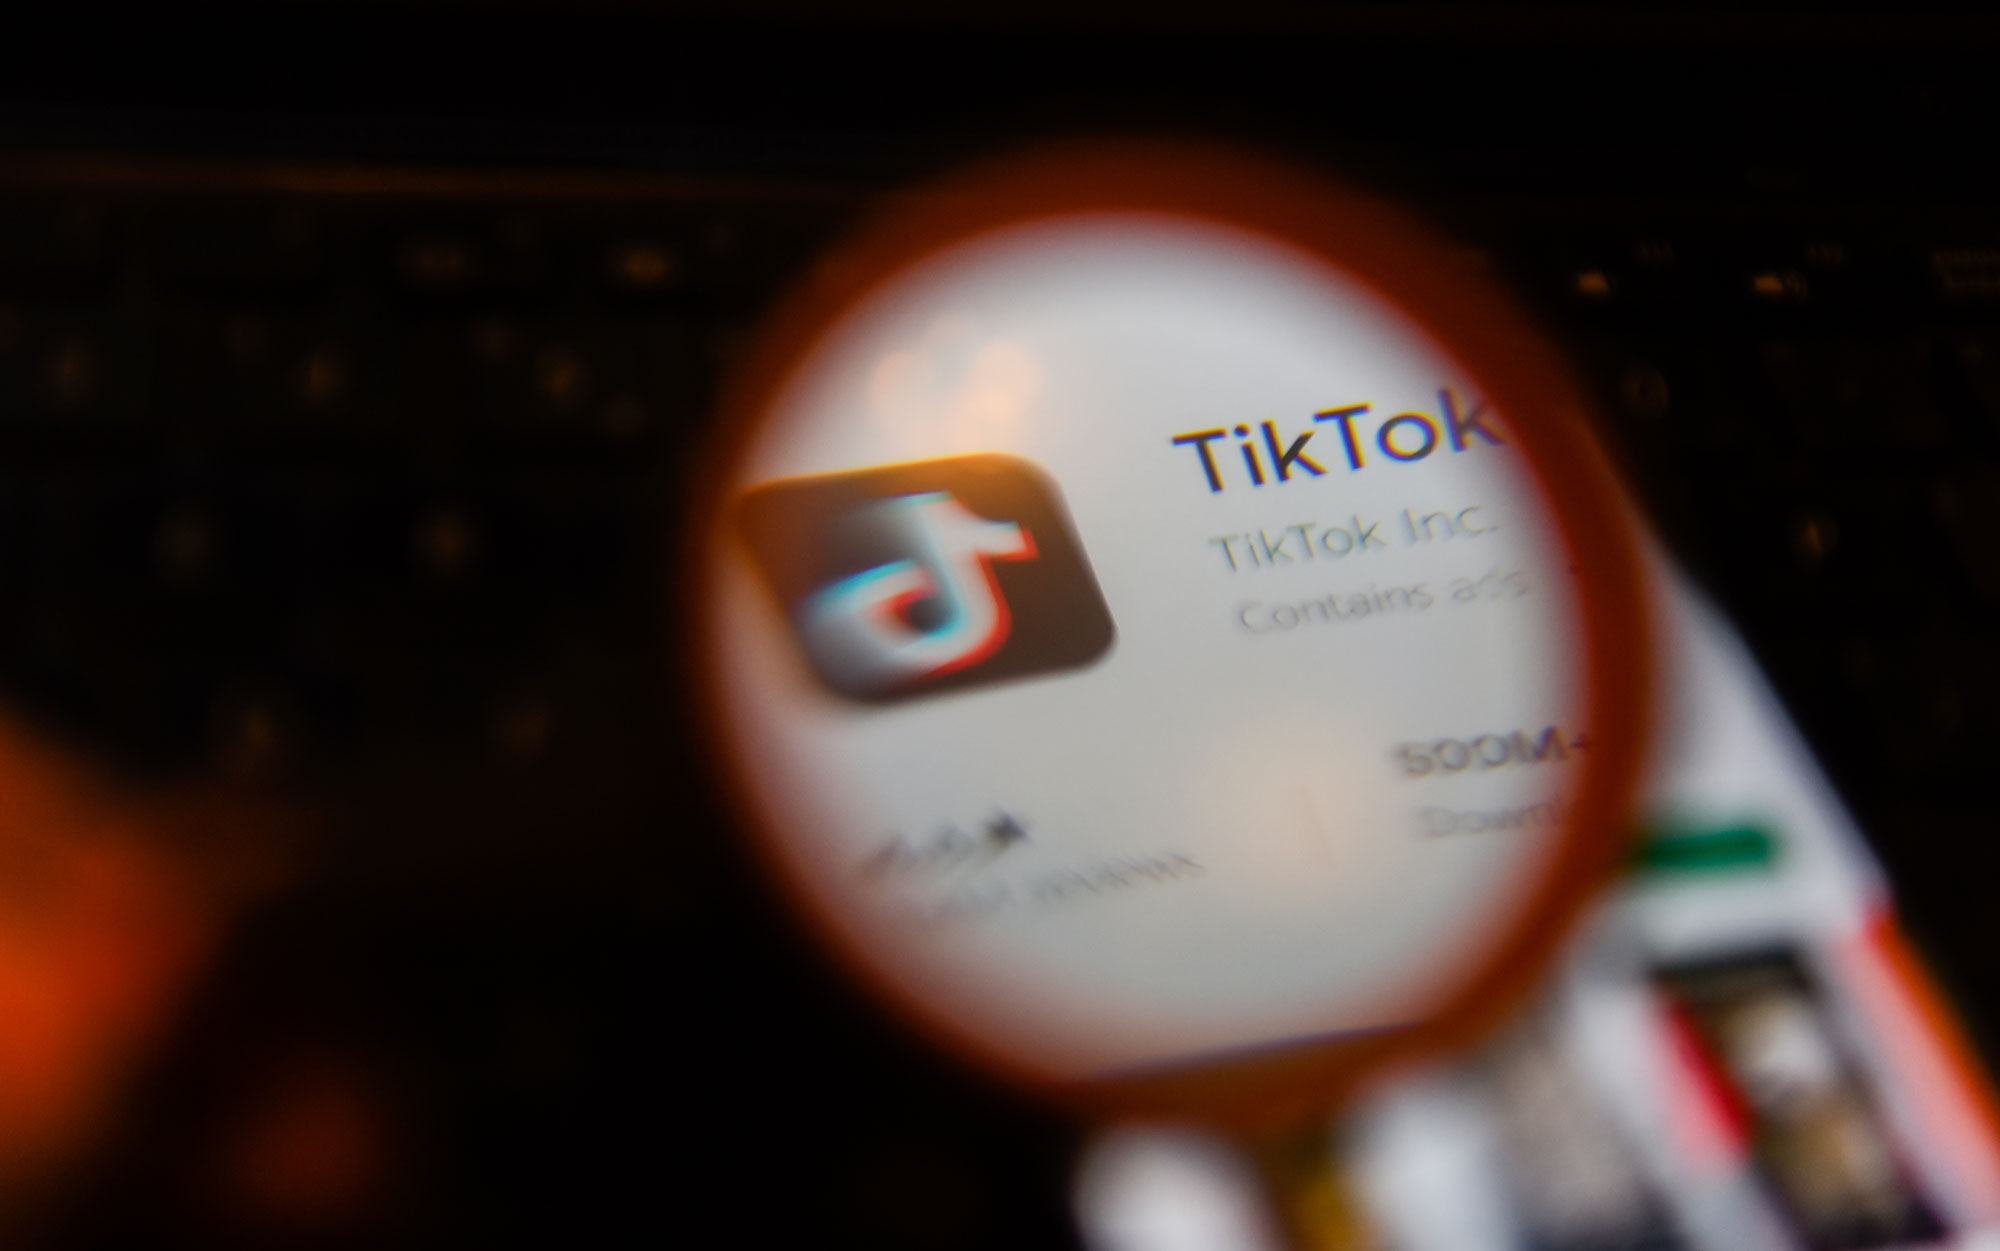 TikTok's app on a smartphone, with a magnifying glass in front